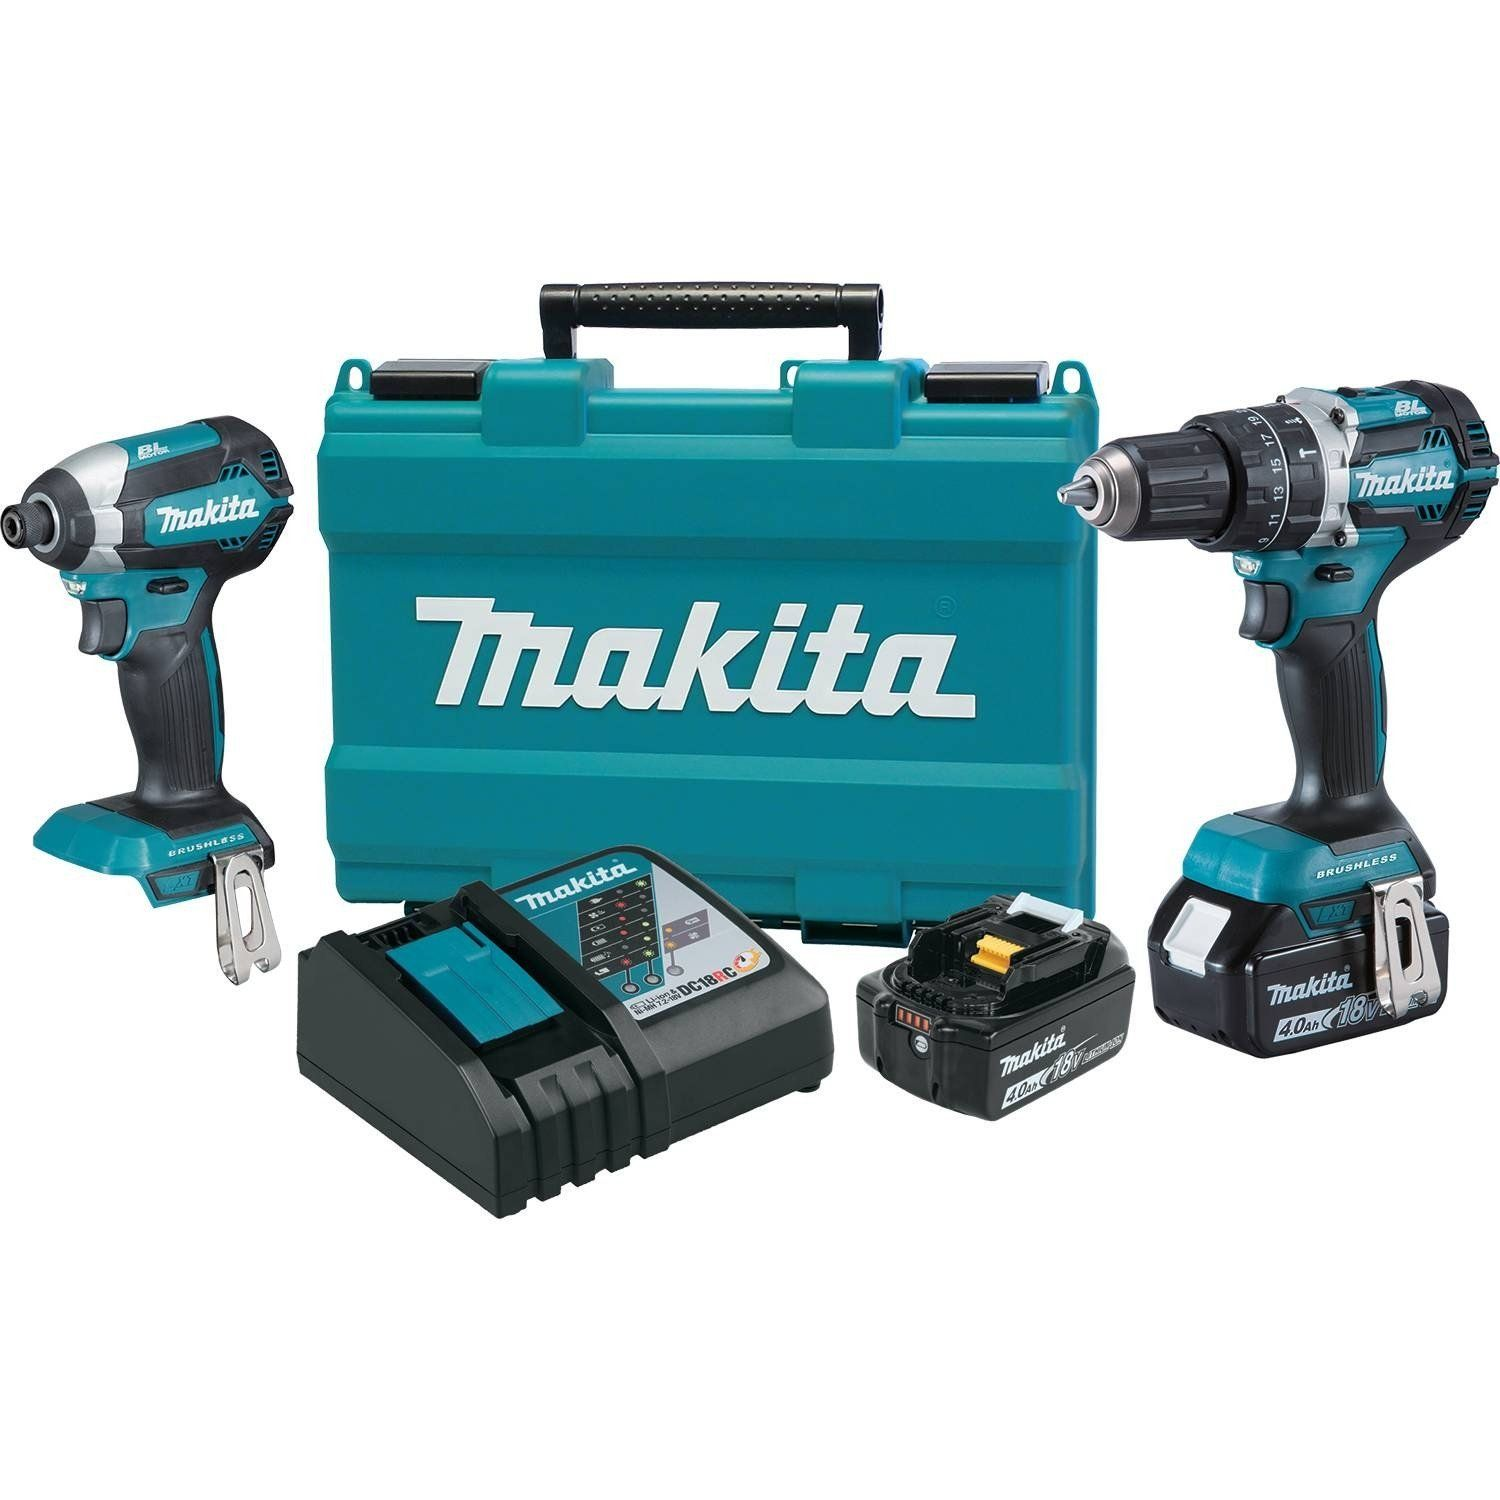 Makita xt269m 18v lxt lithium ion brushless cordless 2 pc combo kit makita xt269m 18v lxt lithium ion brushless cordless 2 pc combo kit solutioingenieria Image collections